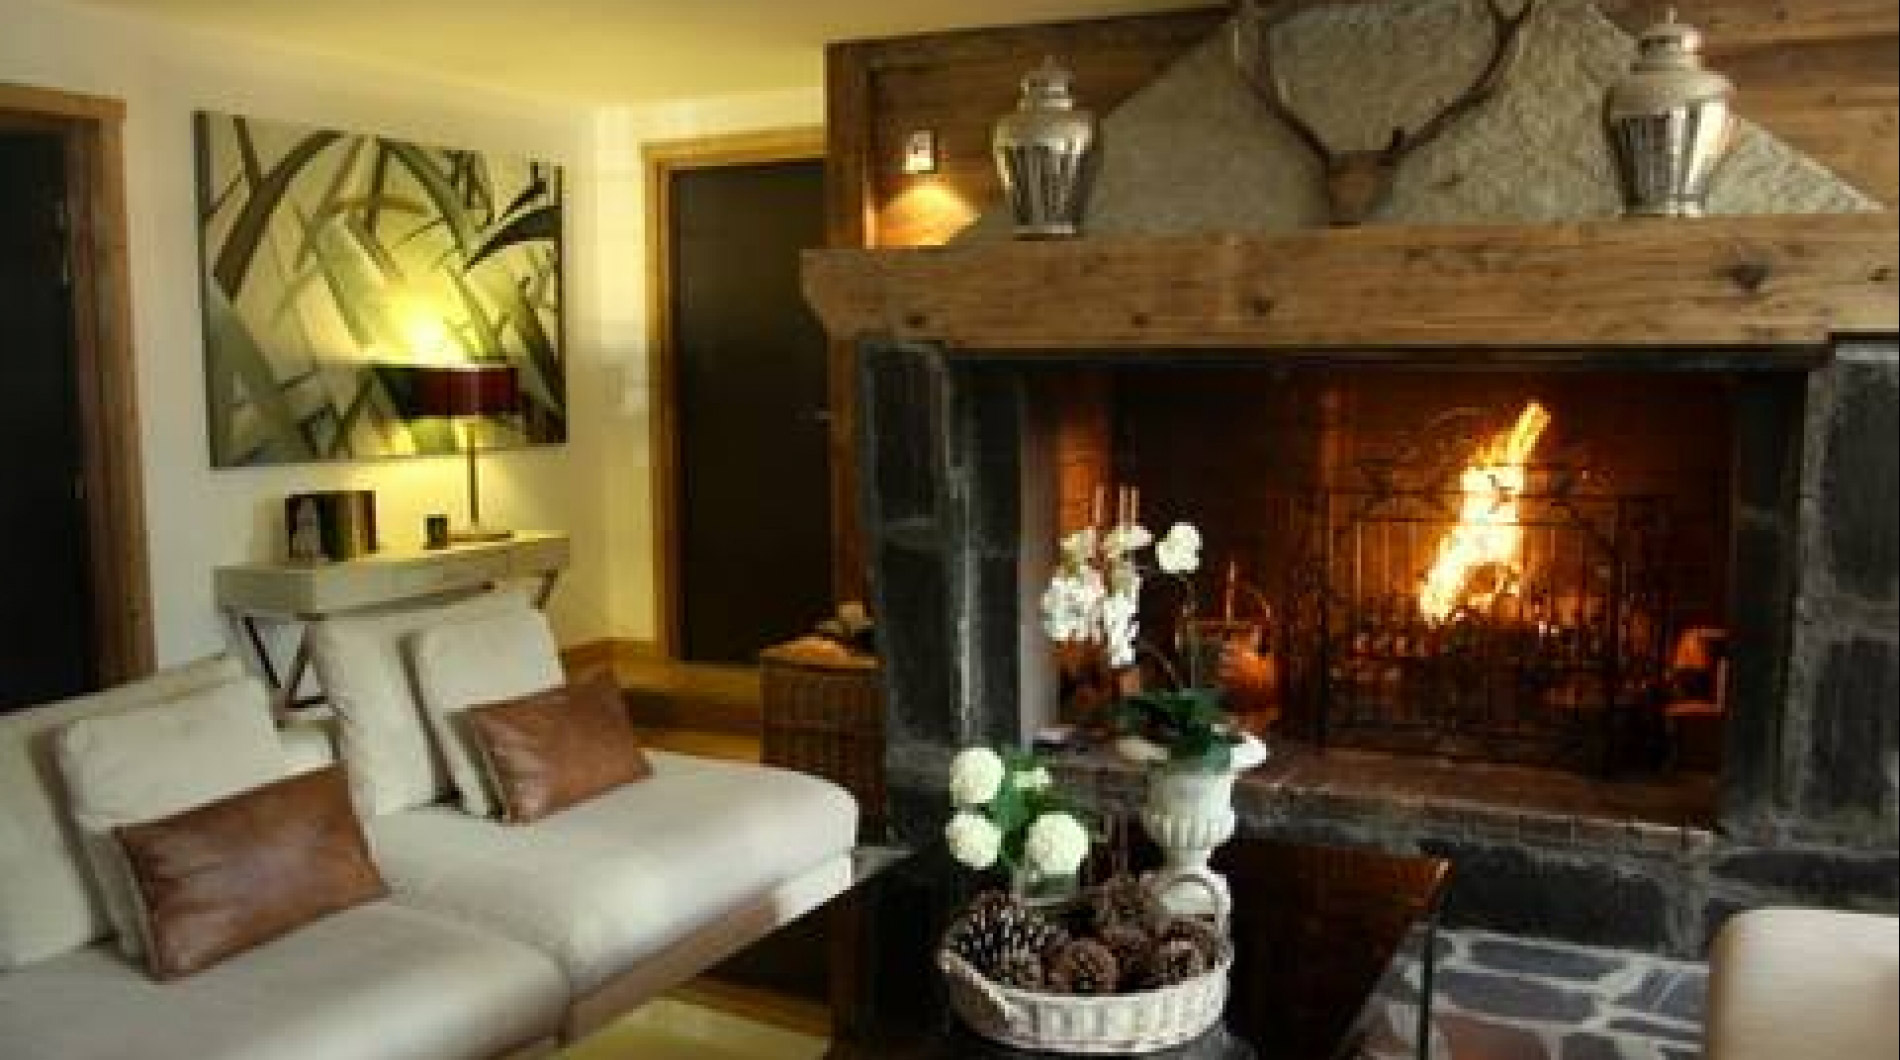 The huge open fire place